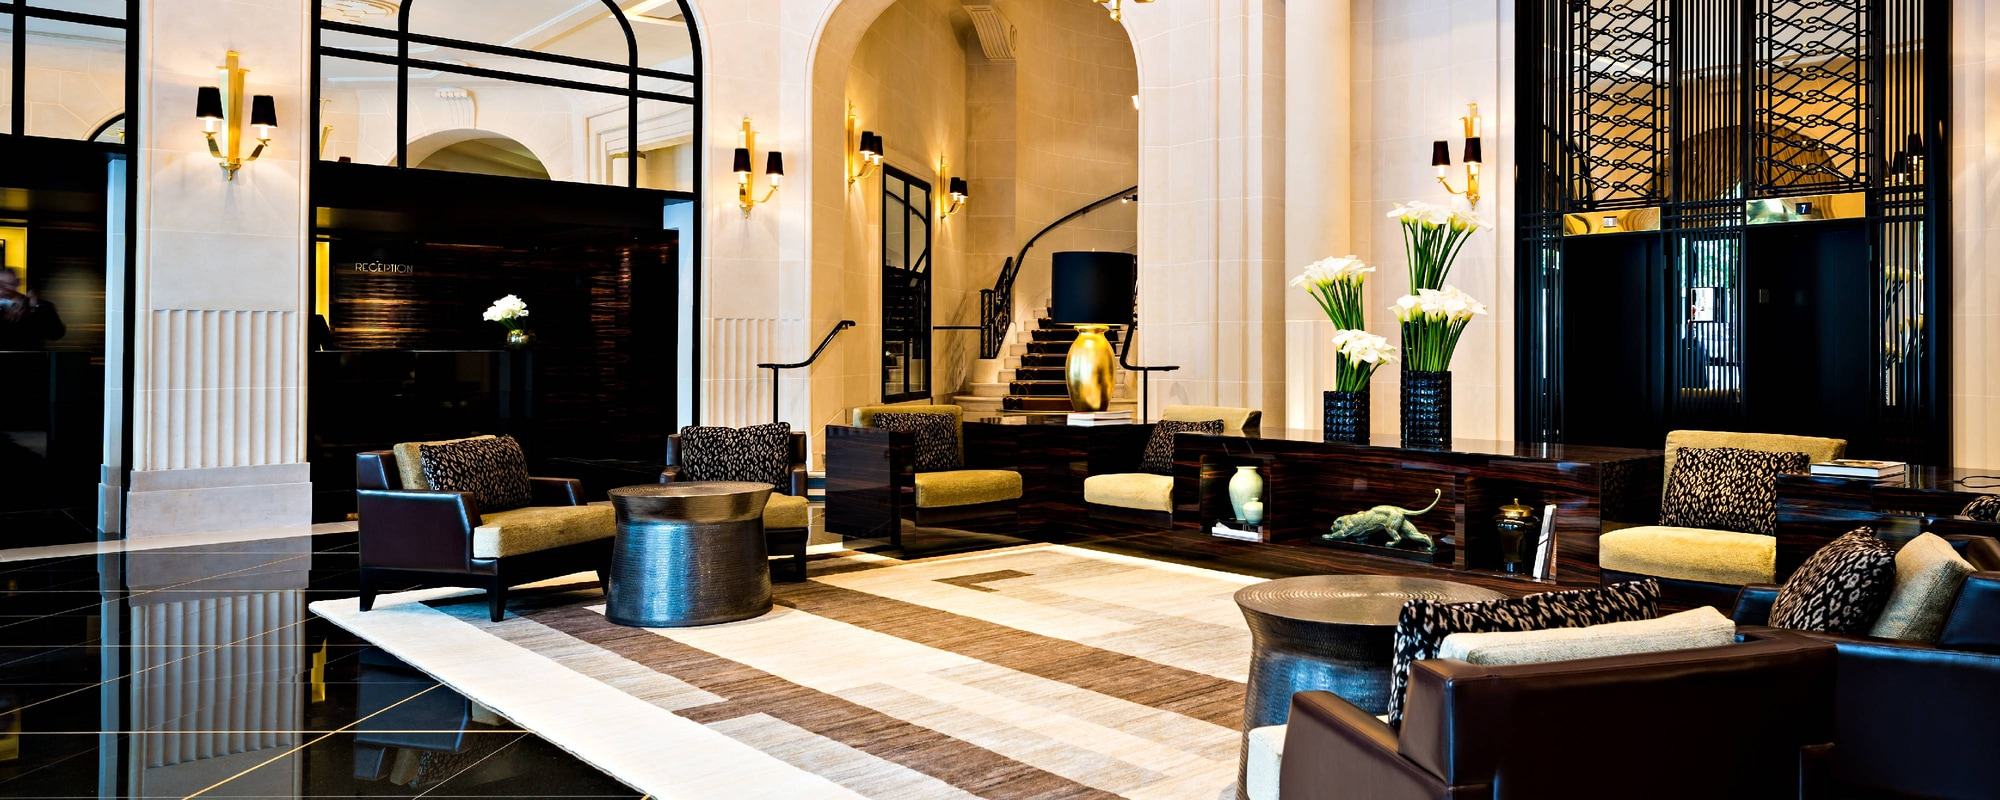 5 Star Hotel In Paris Prince De Galles A Luxury